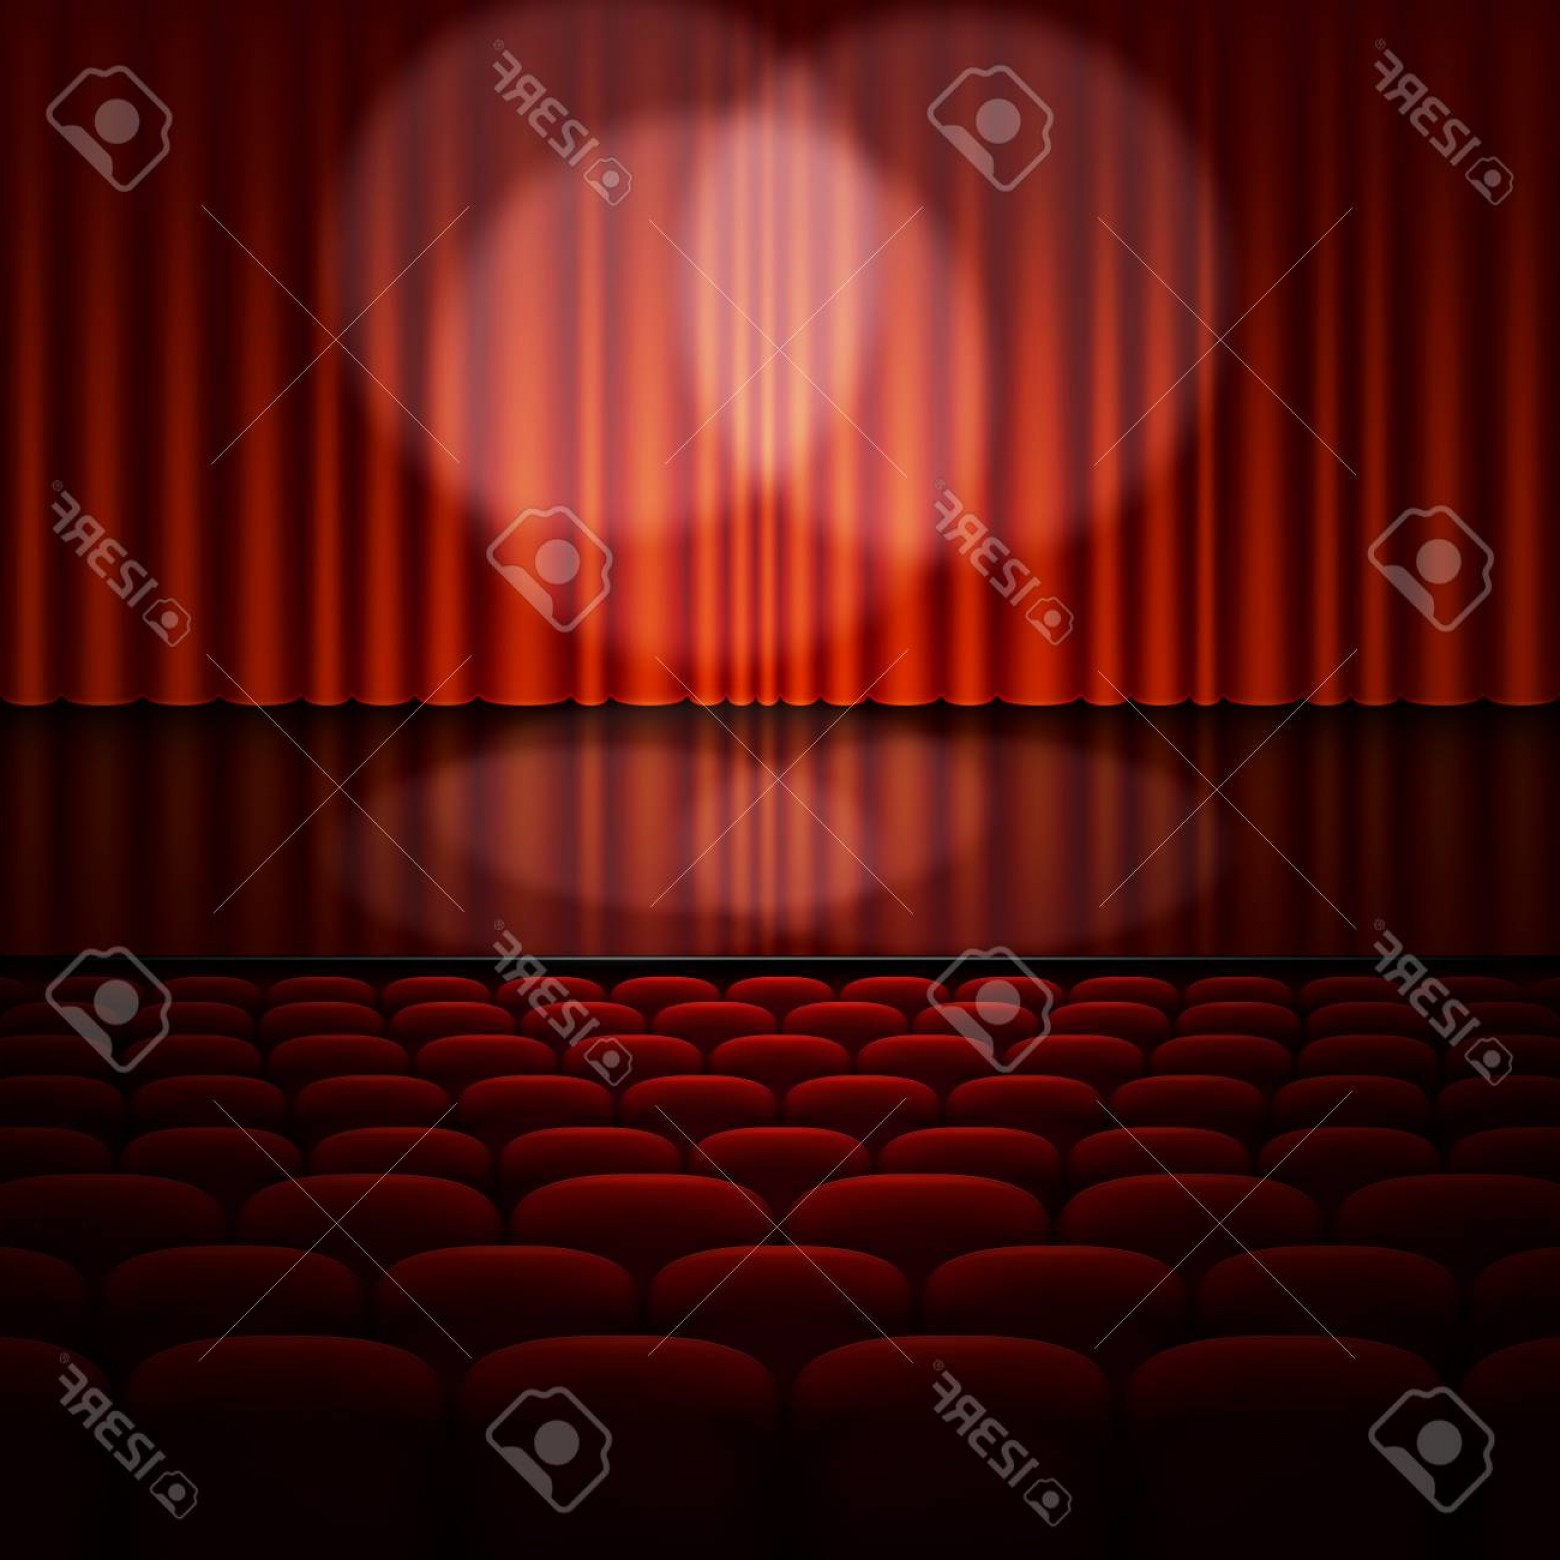 Stage Curtain Vector: Photostock Vector Stage With Red Curtain Vector Illustration